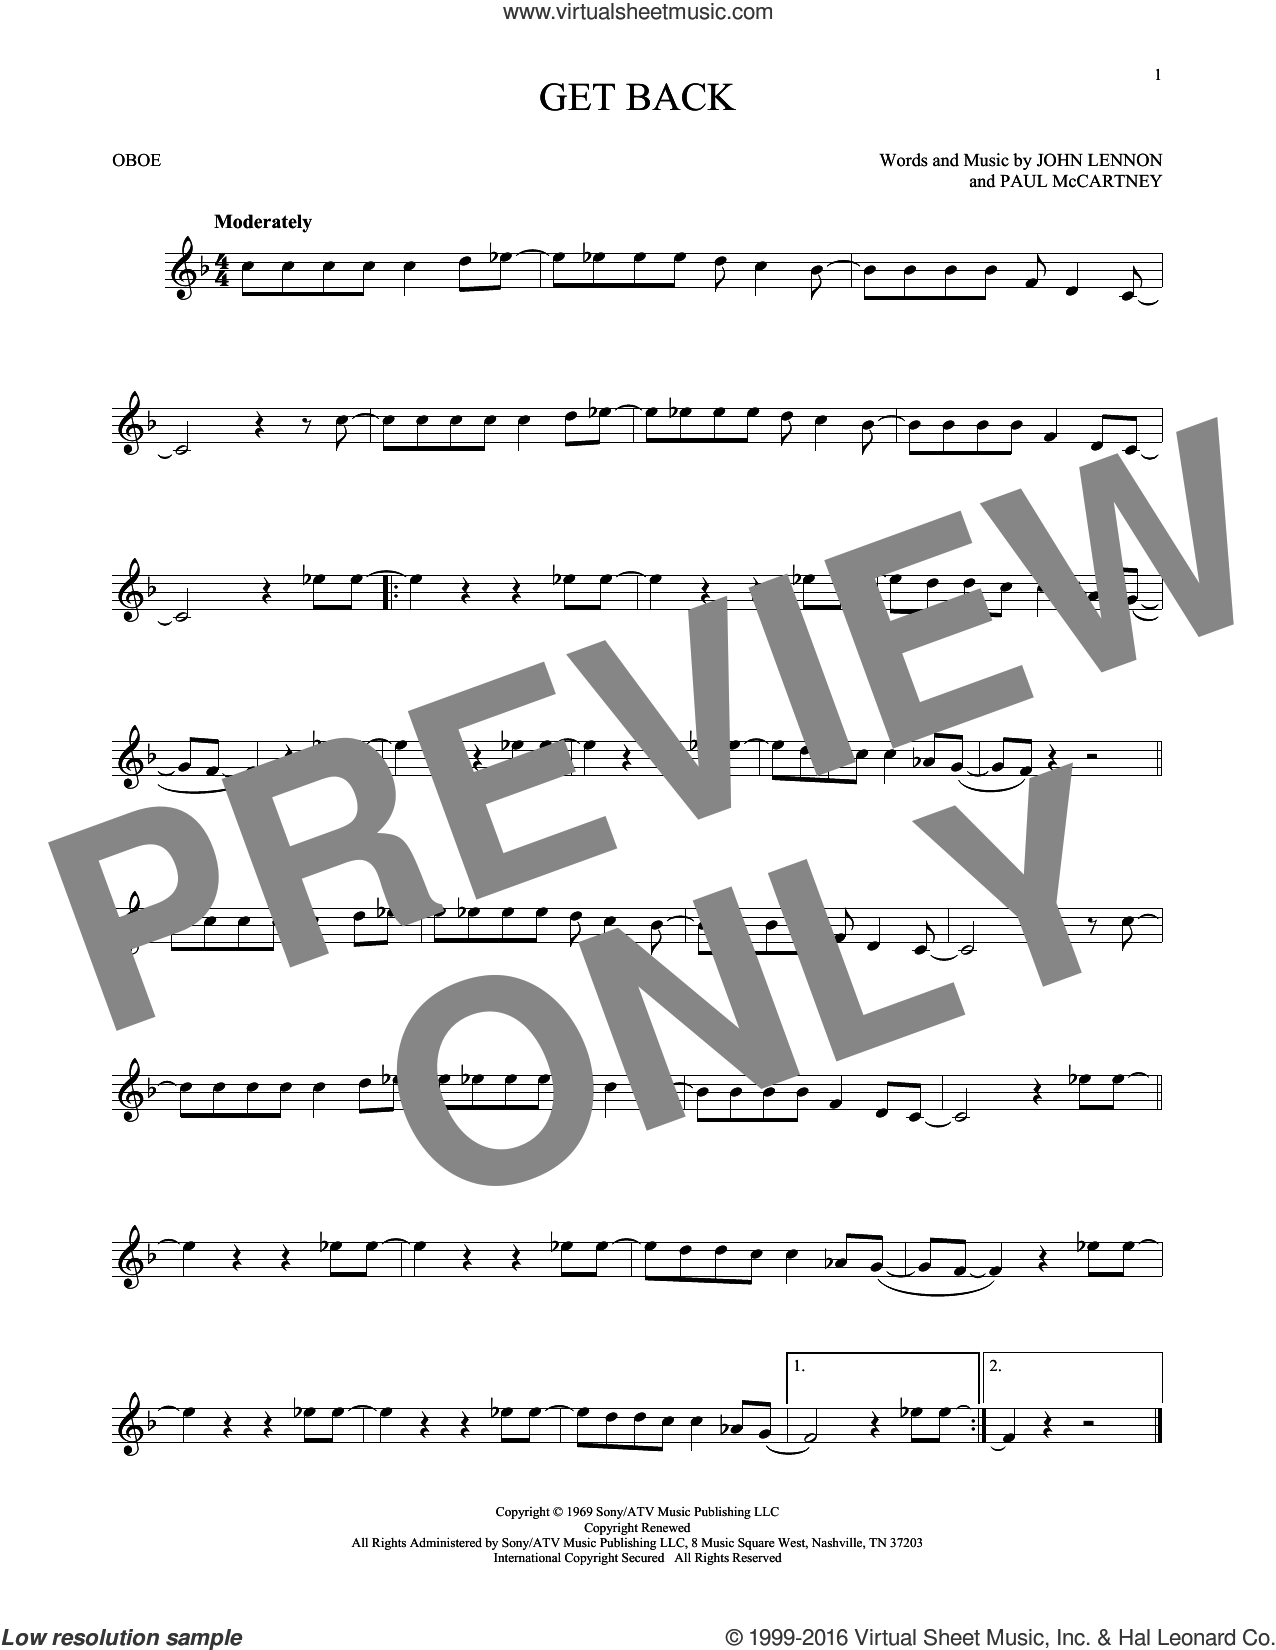 Get Back sheet music for oboe solo by Paul McCartney, The Beatles and John Lennon. Score Image Preview.